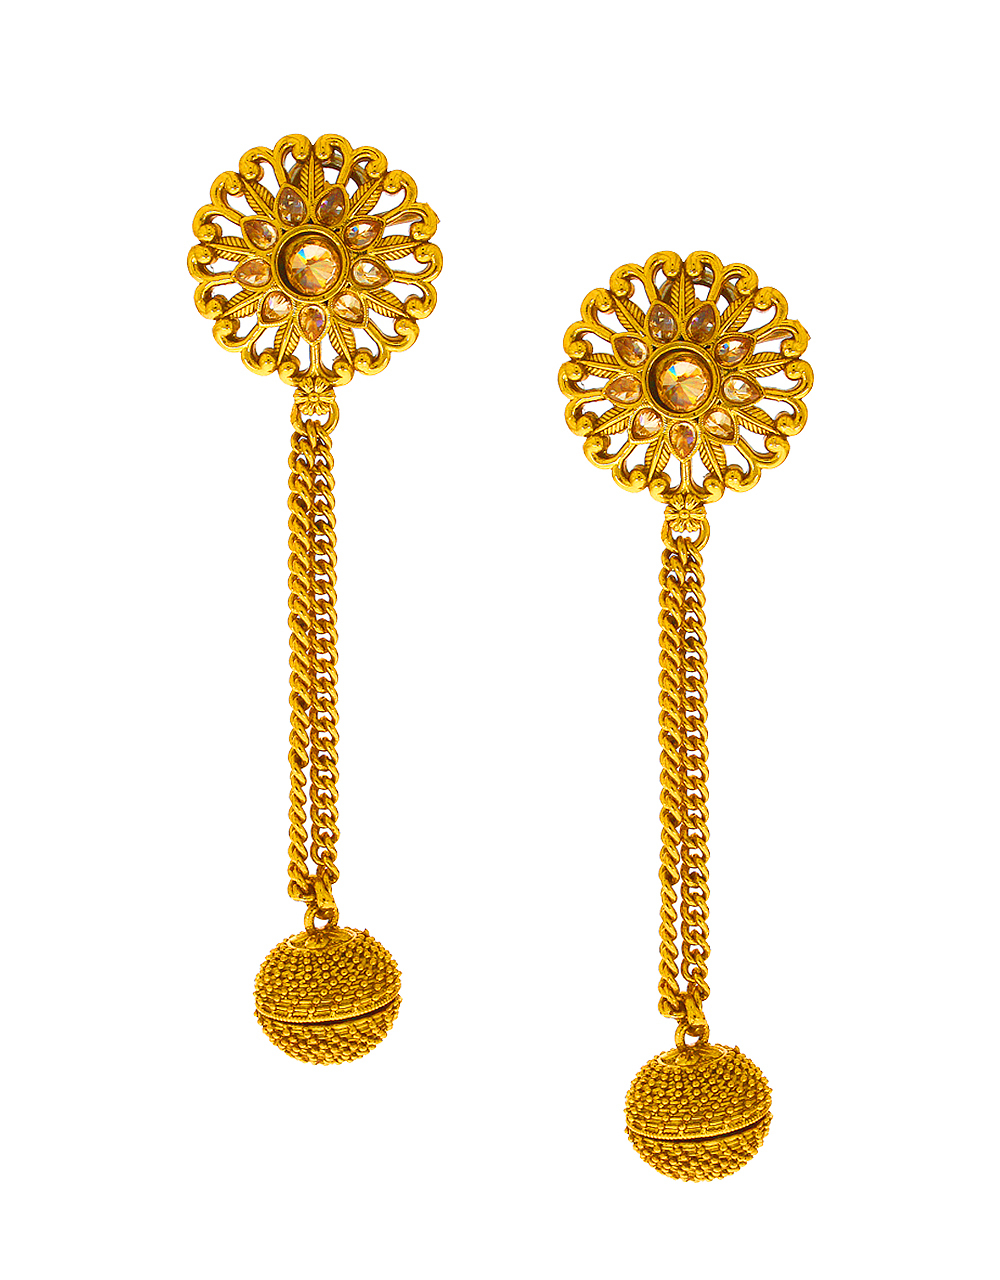 Gold Earrings With Chain Design Image Of Earring